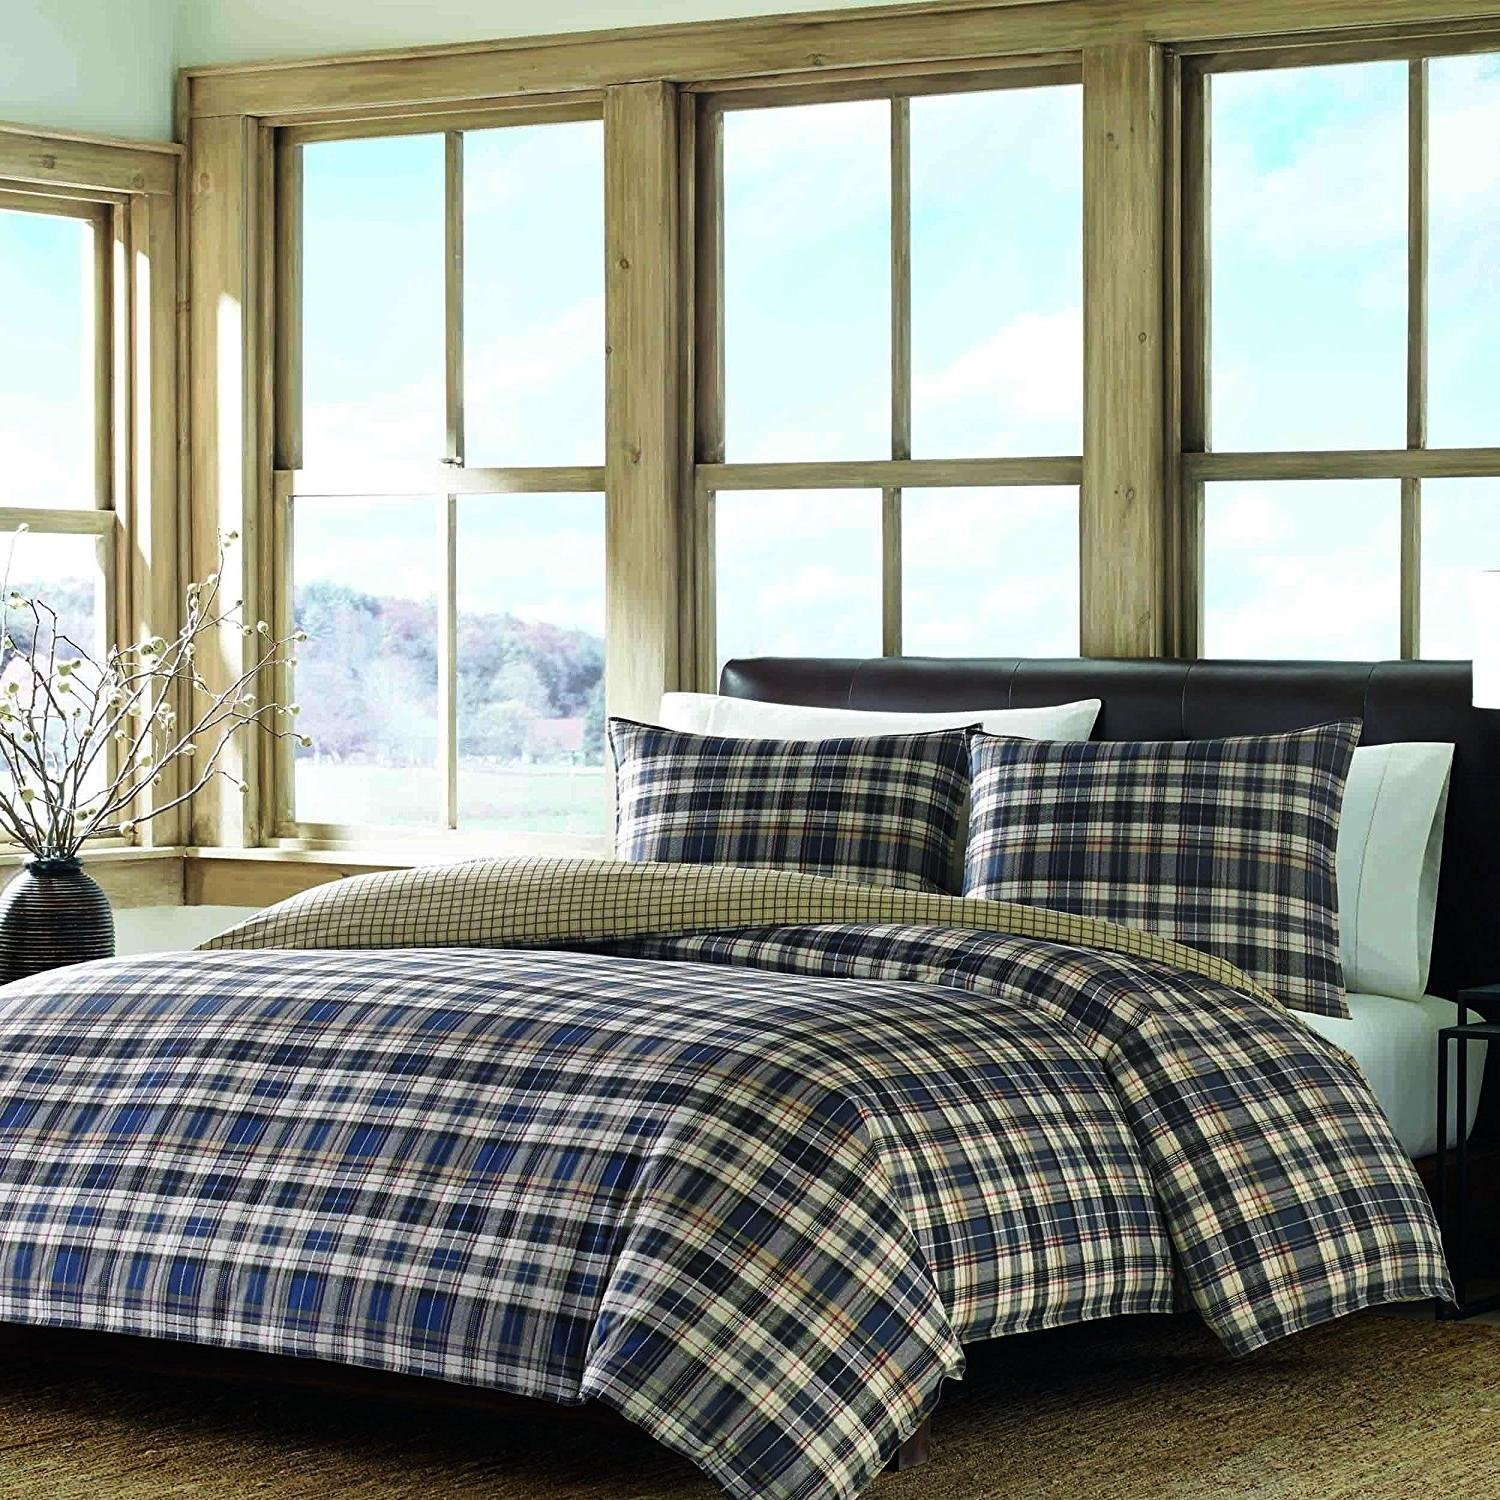 DP 3pc Grey Blue Grey Plaid Tartan Comforter King Set, Brown Tan Cabin Themed Bedding Squares Red Green Checked Pattern Lodge Outdoors Country, Percale Cotton,